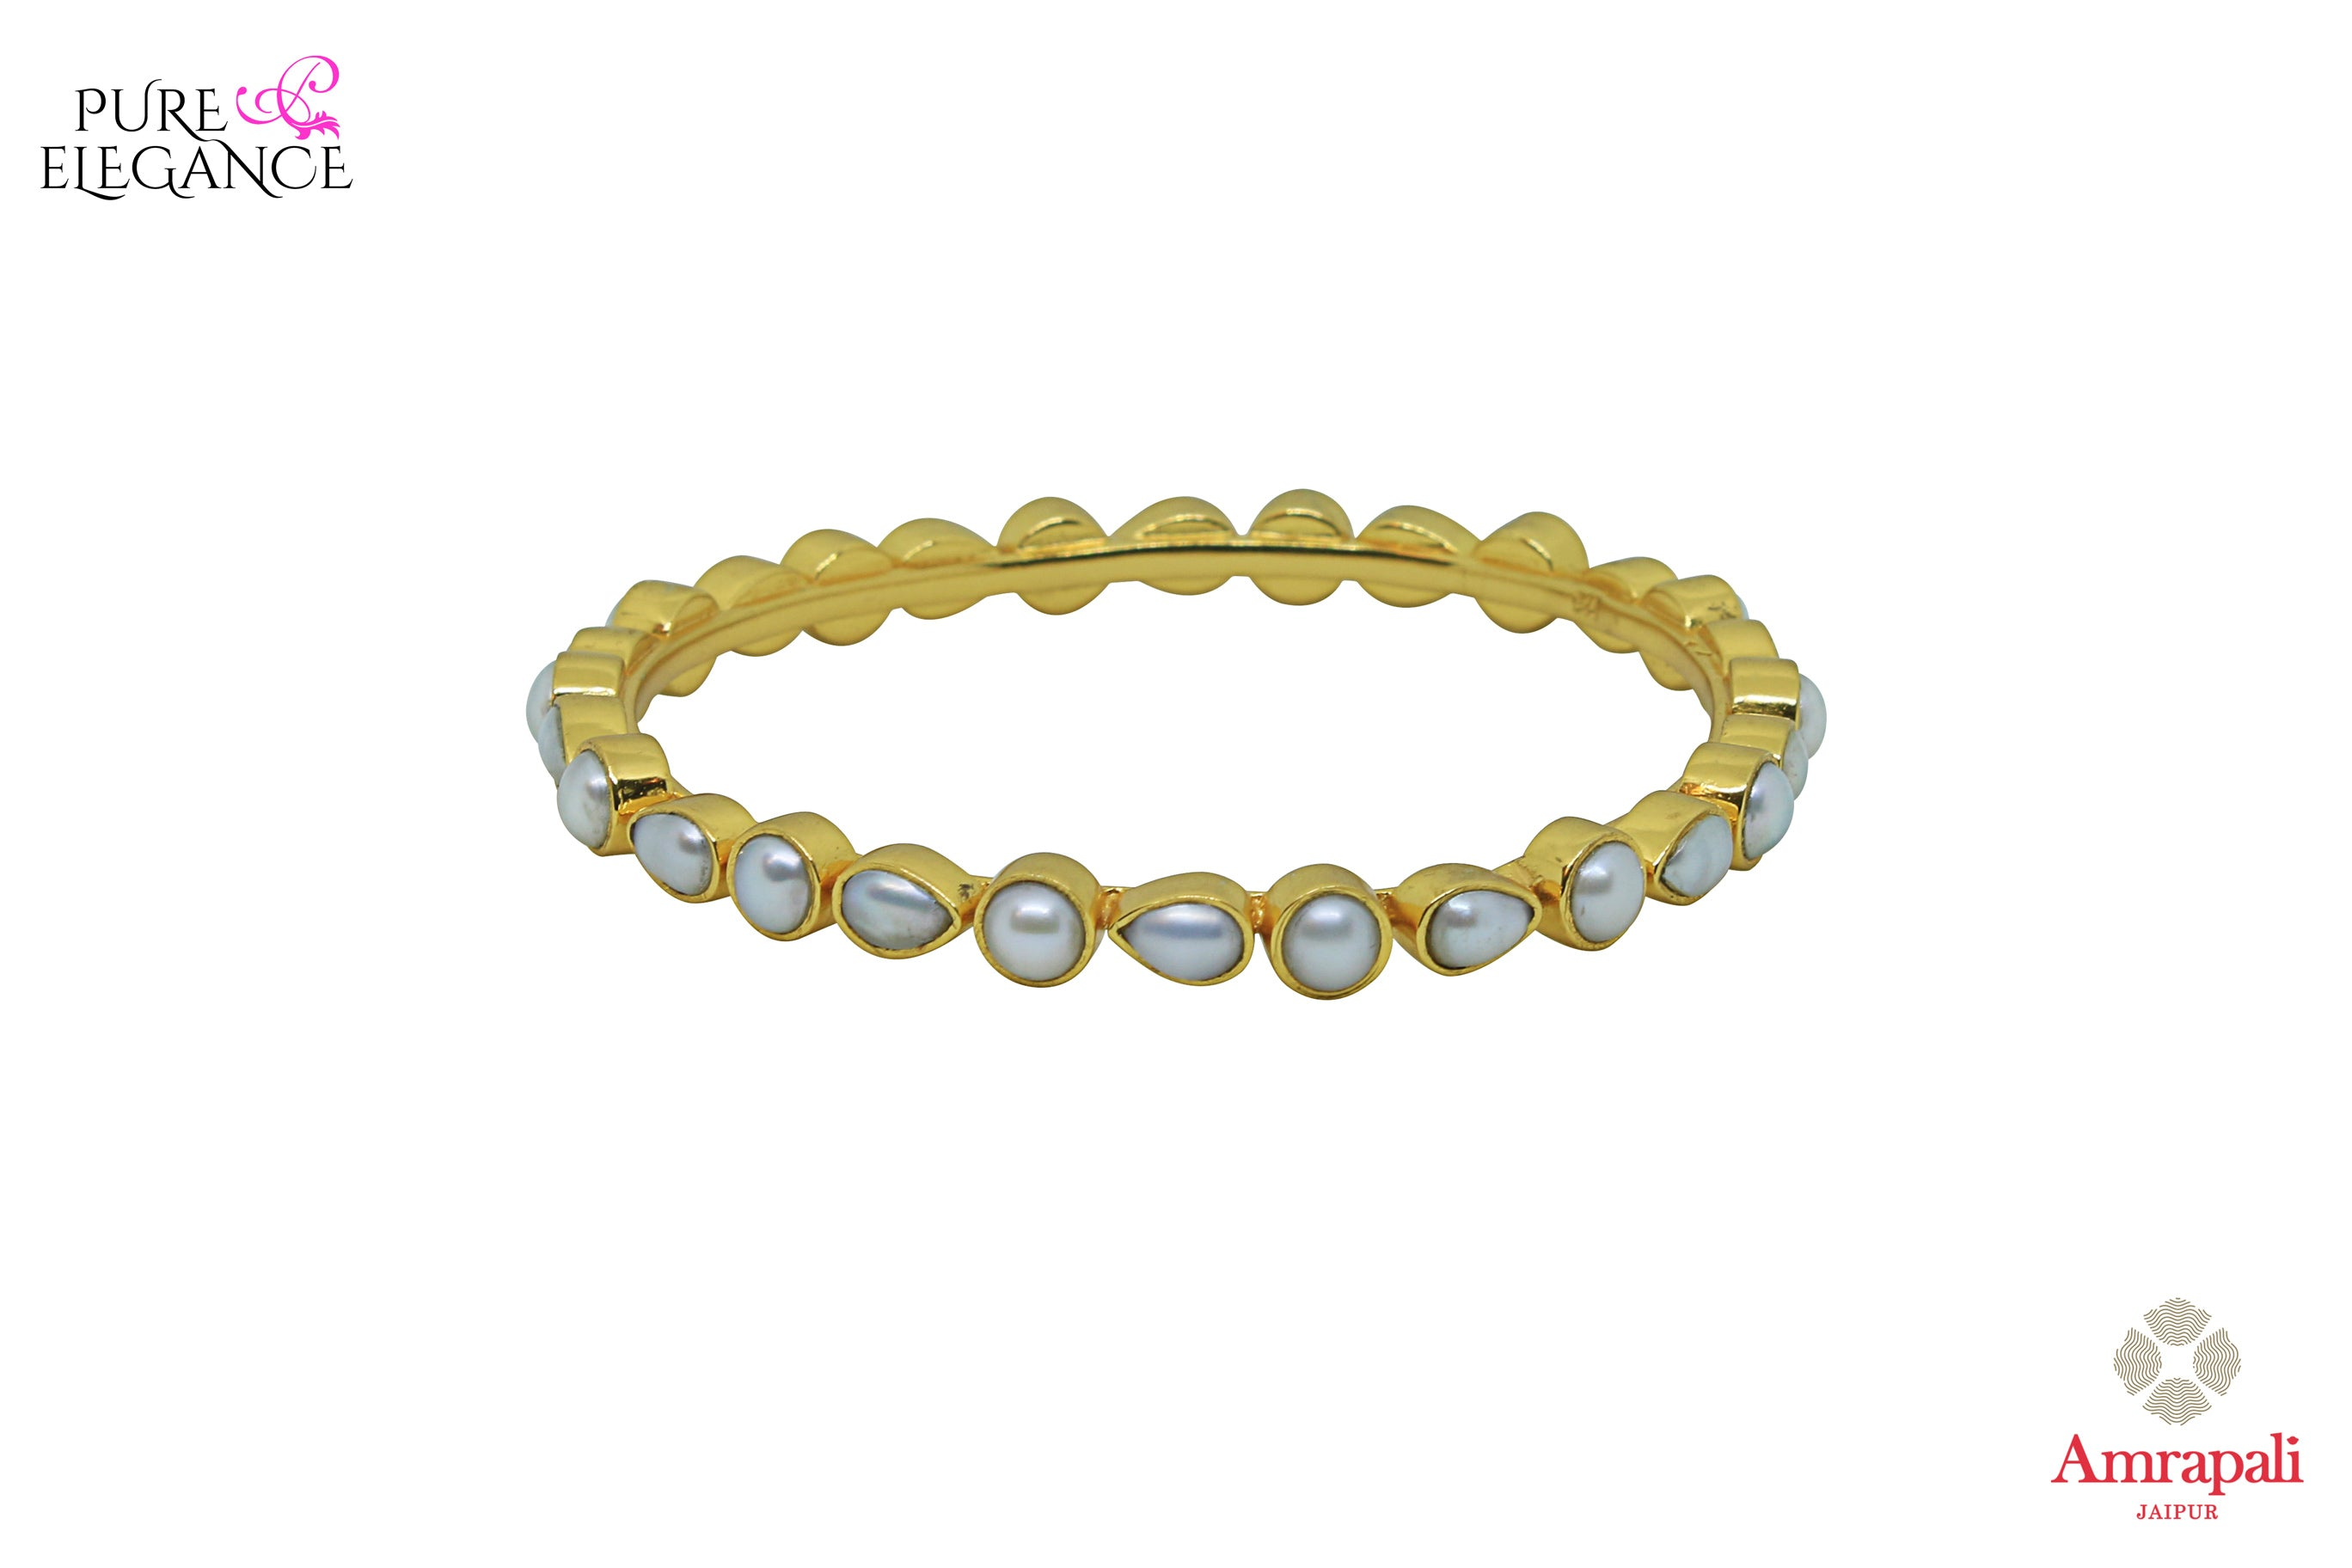 Shop Amrapali silver gold plated pearl bangle with online in USA. Find an exquisite collection of handcrafted silver gold plated jewelry in USA at Pure Elegance Indian fashion store. Complete your festive look with traditional Indian jewelry, silver gold plated earrings, silver jewellery from our online store.-front